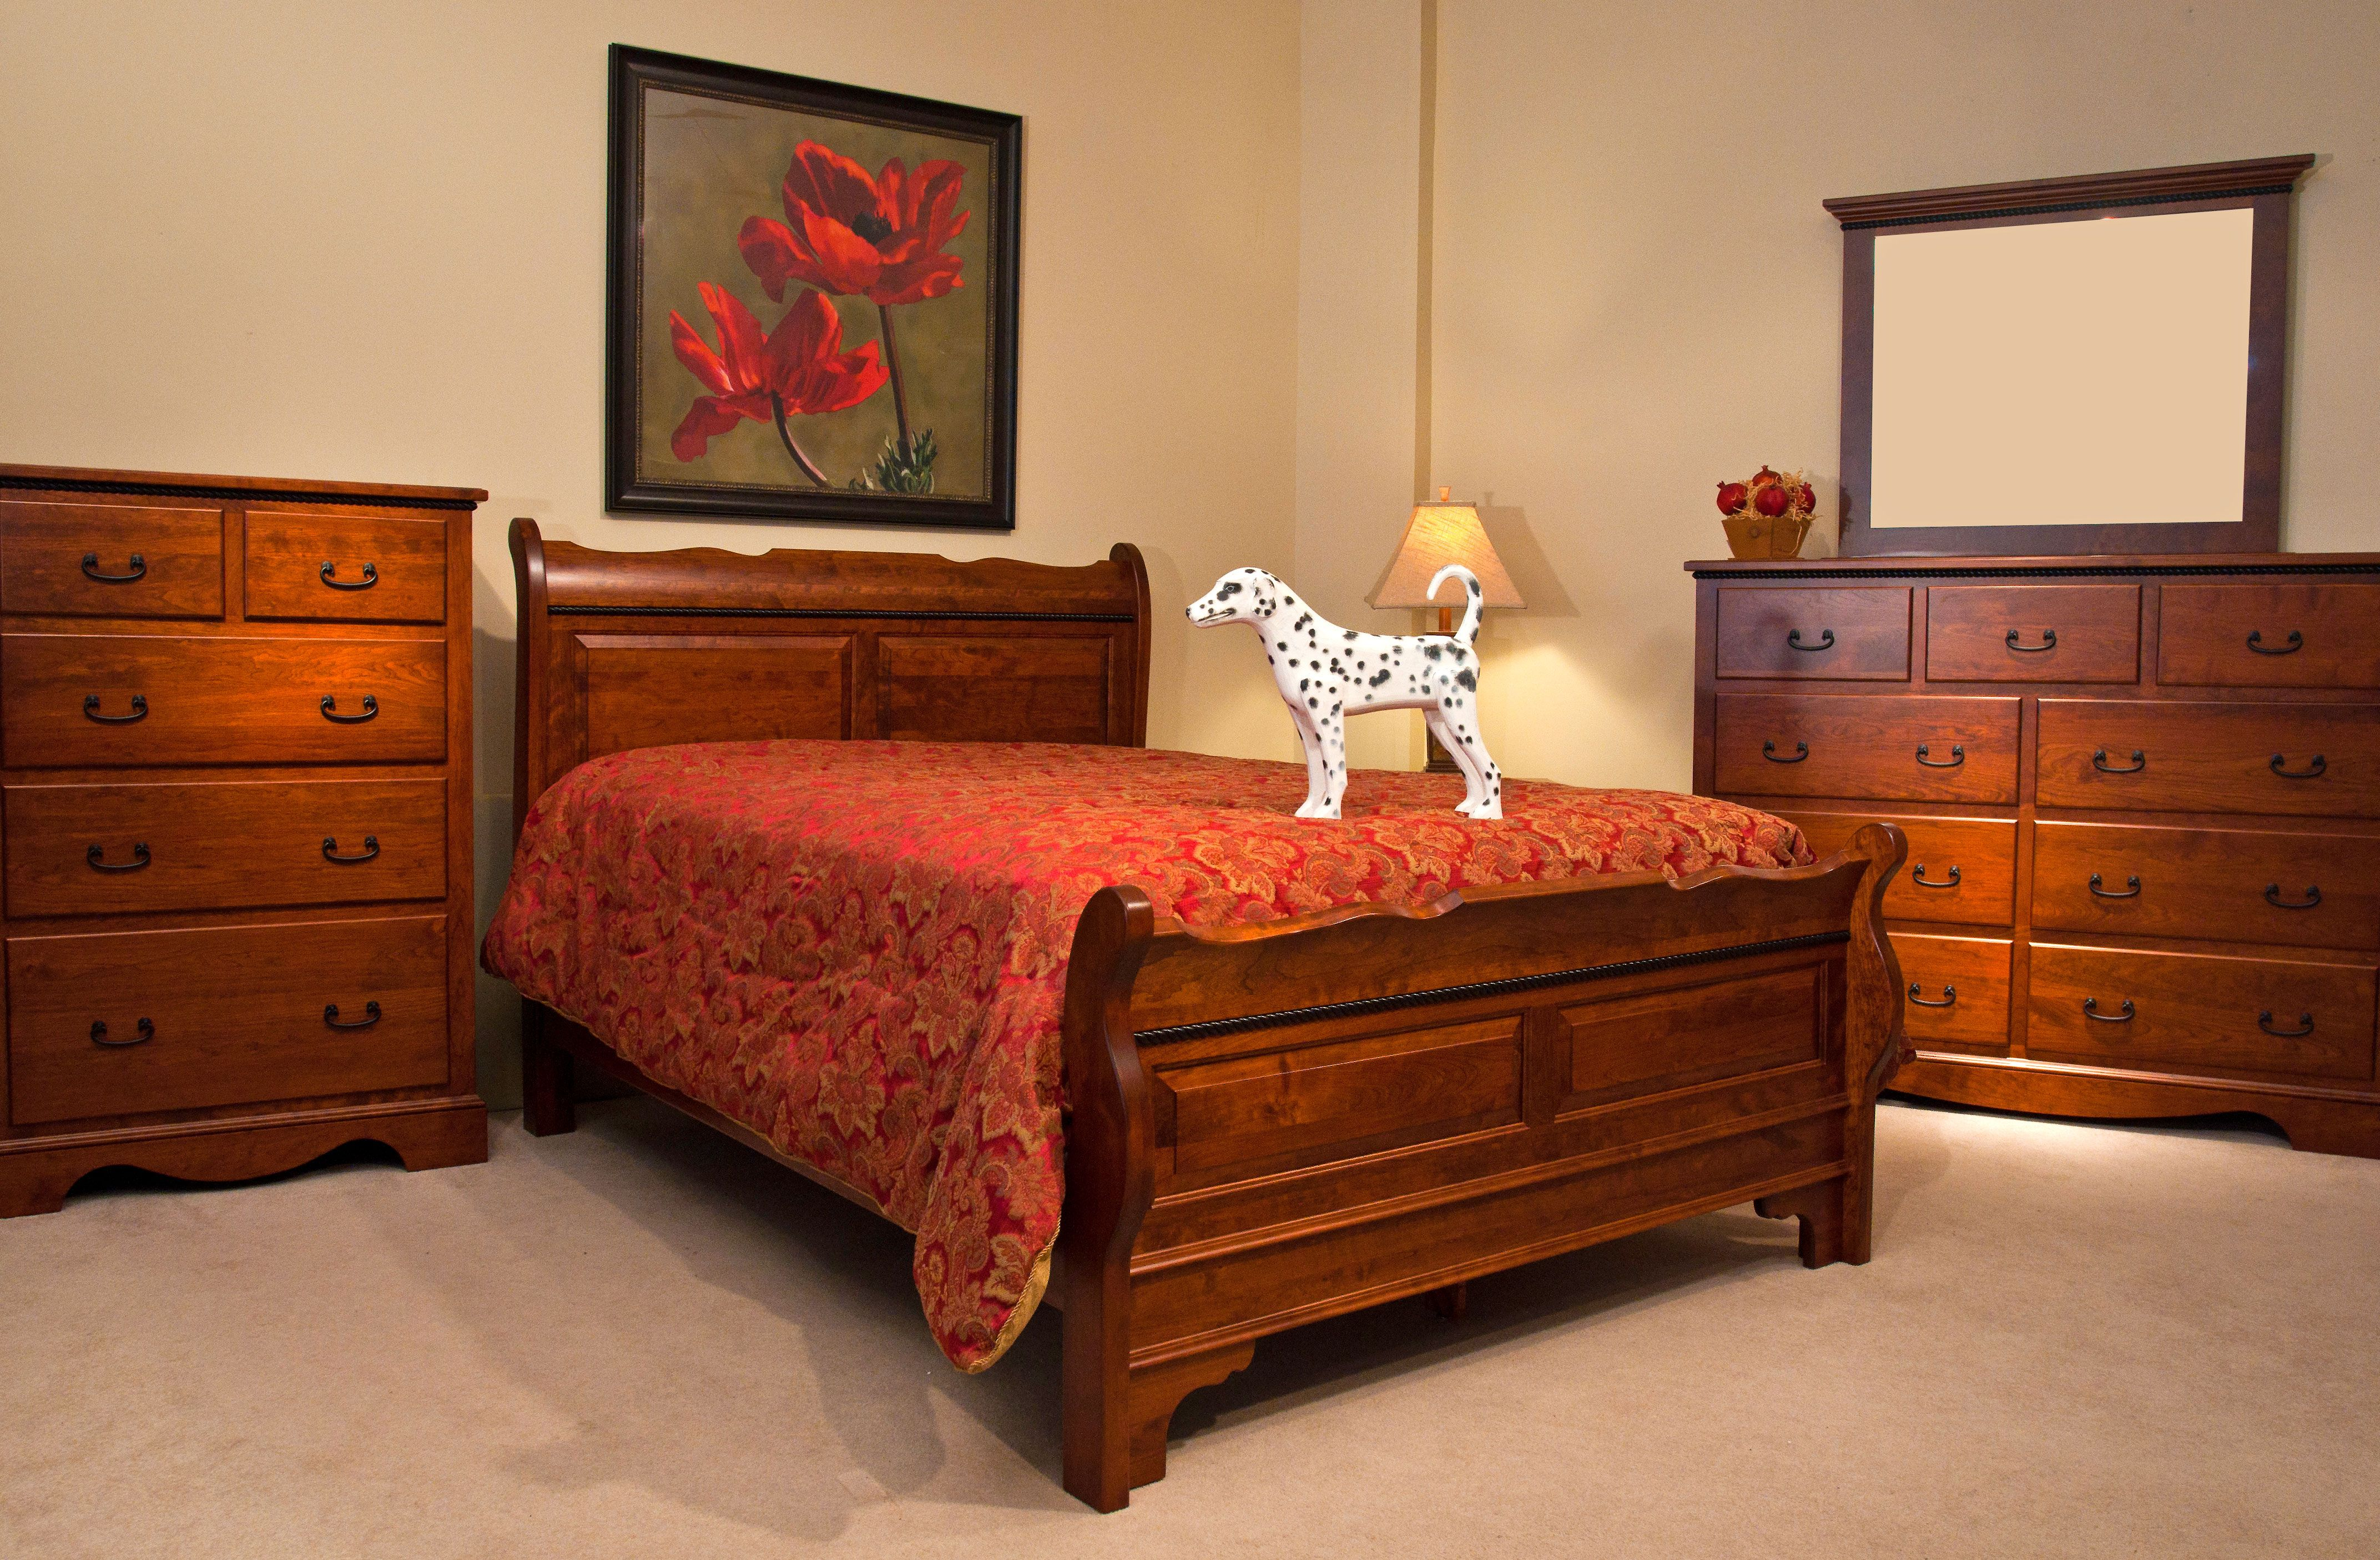 Top 25 Ideas About Amish Furniture On Pinterest   Electronic Appliances   Amish Family And Amish. Photo   Amish Furniture Bedroom Sets Images